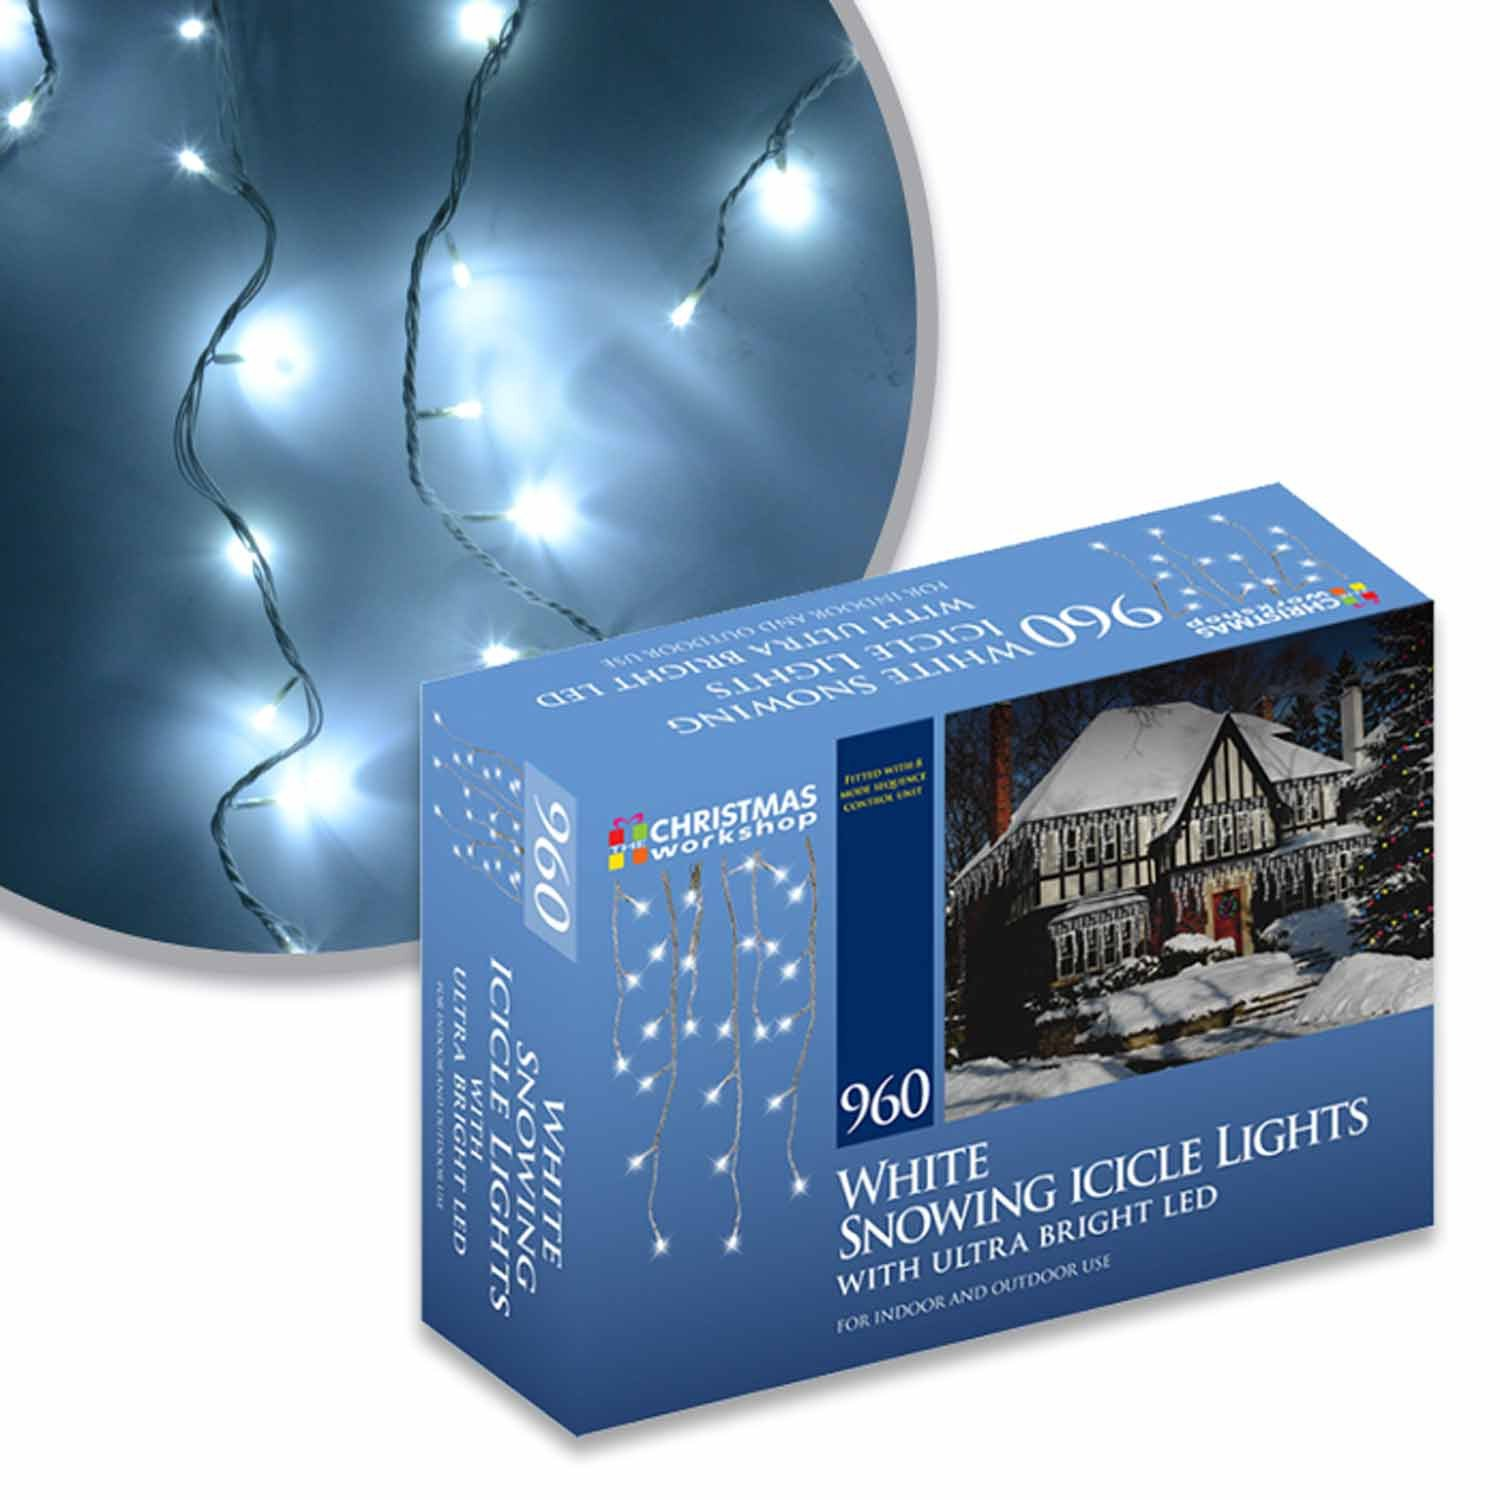 Benross Marketing Ltd White Snowing Icicle Lights with Ultra Bright ...